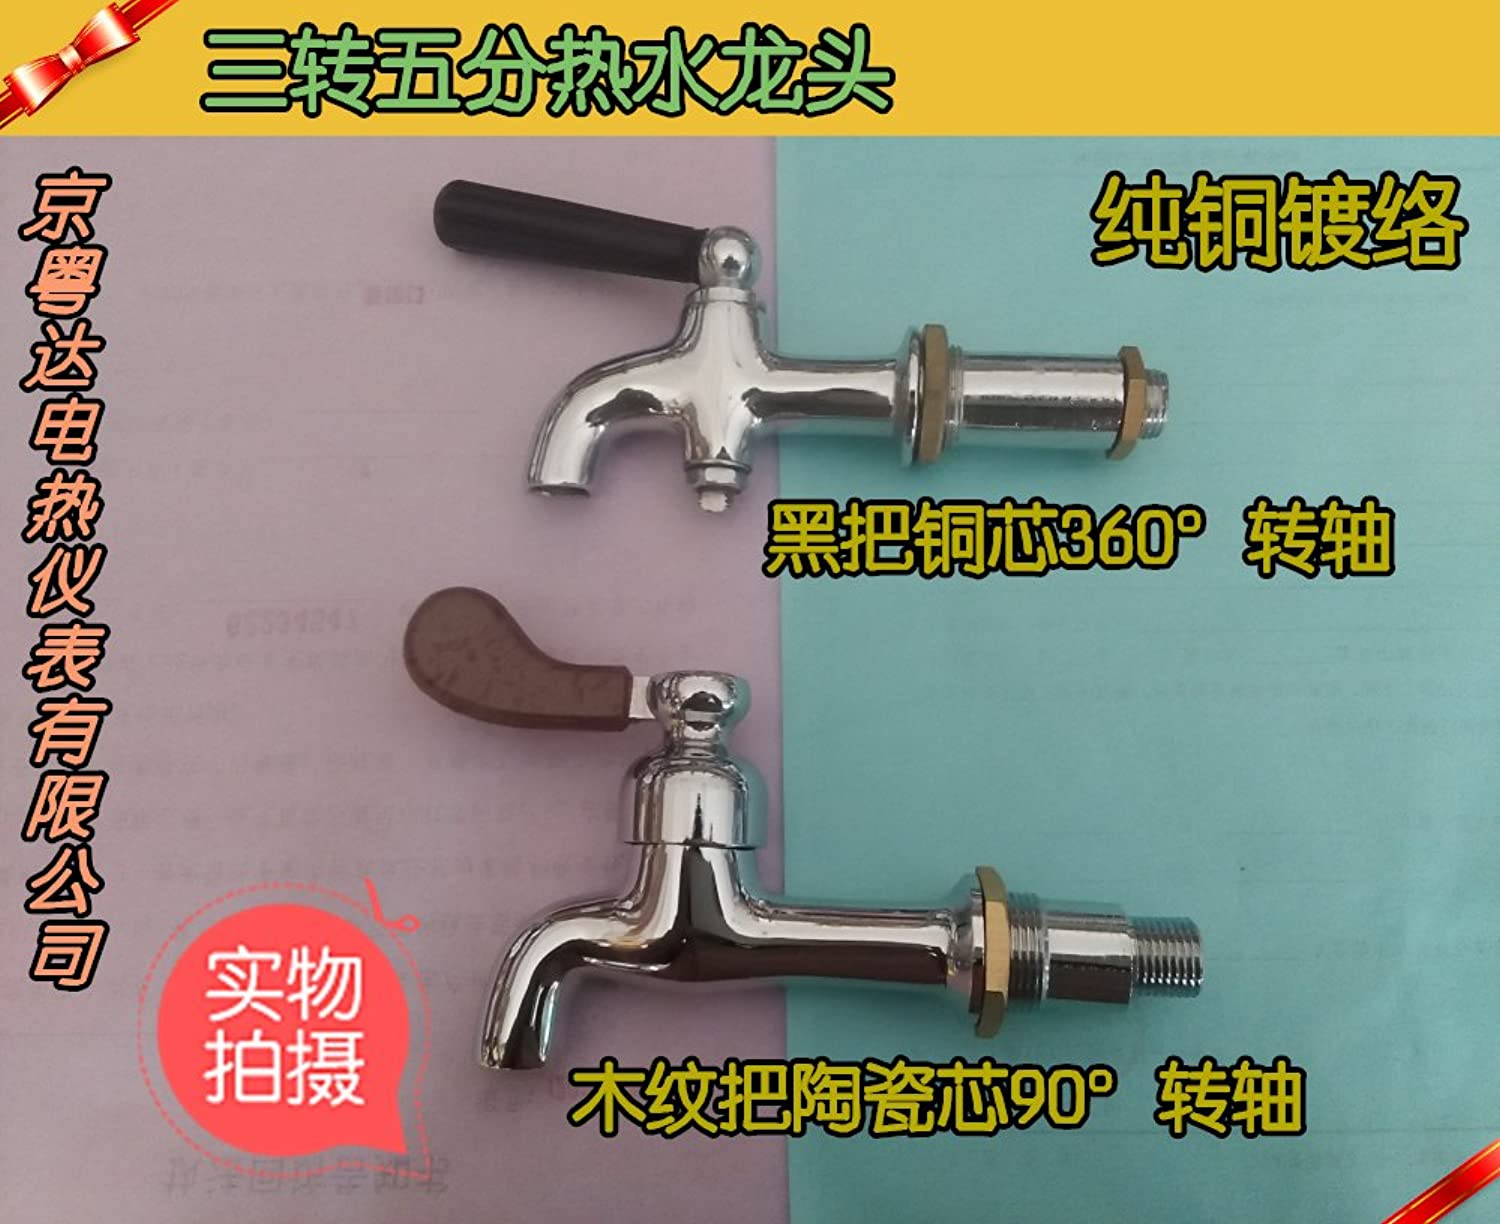 ETERNAL QUALITY Bathroom Sink Basin Tap Brass Mixer Tap Washroom Mixer Faucet Pure copper plating 3 to 5 hours on the water-taps on the water tank water heater Faucet bla